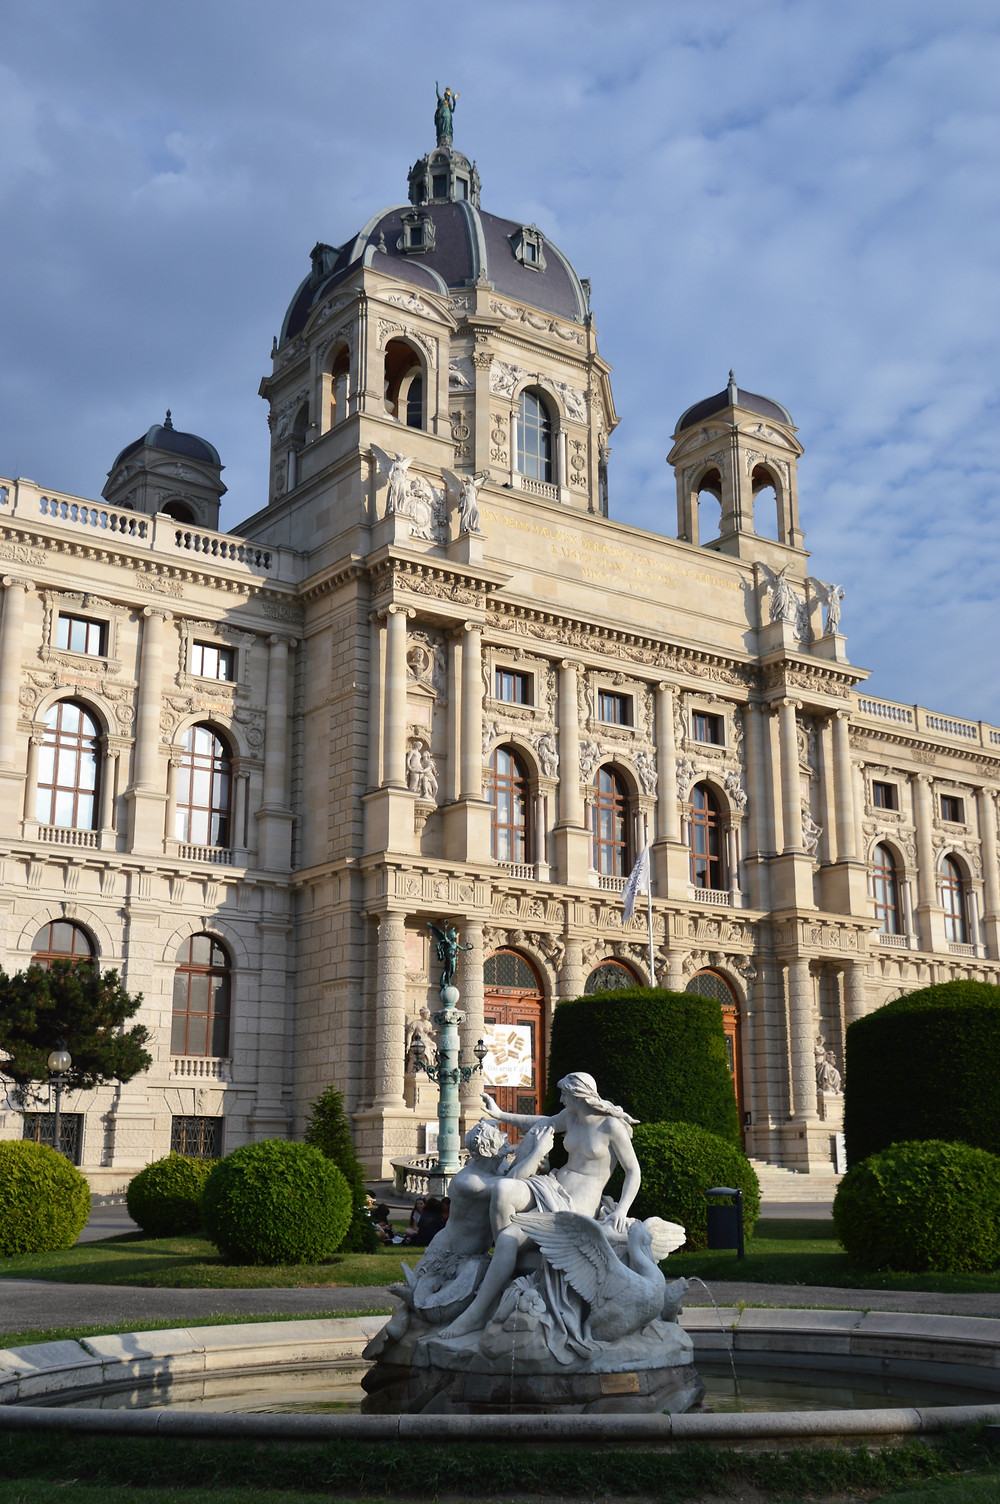 The ornate exterior of the Natural History Museum in Vienna